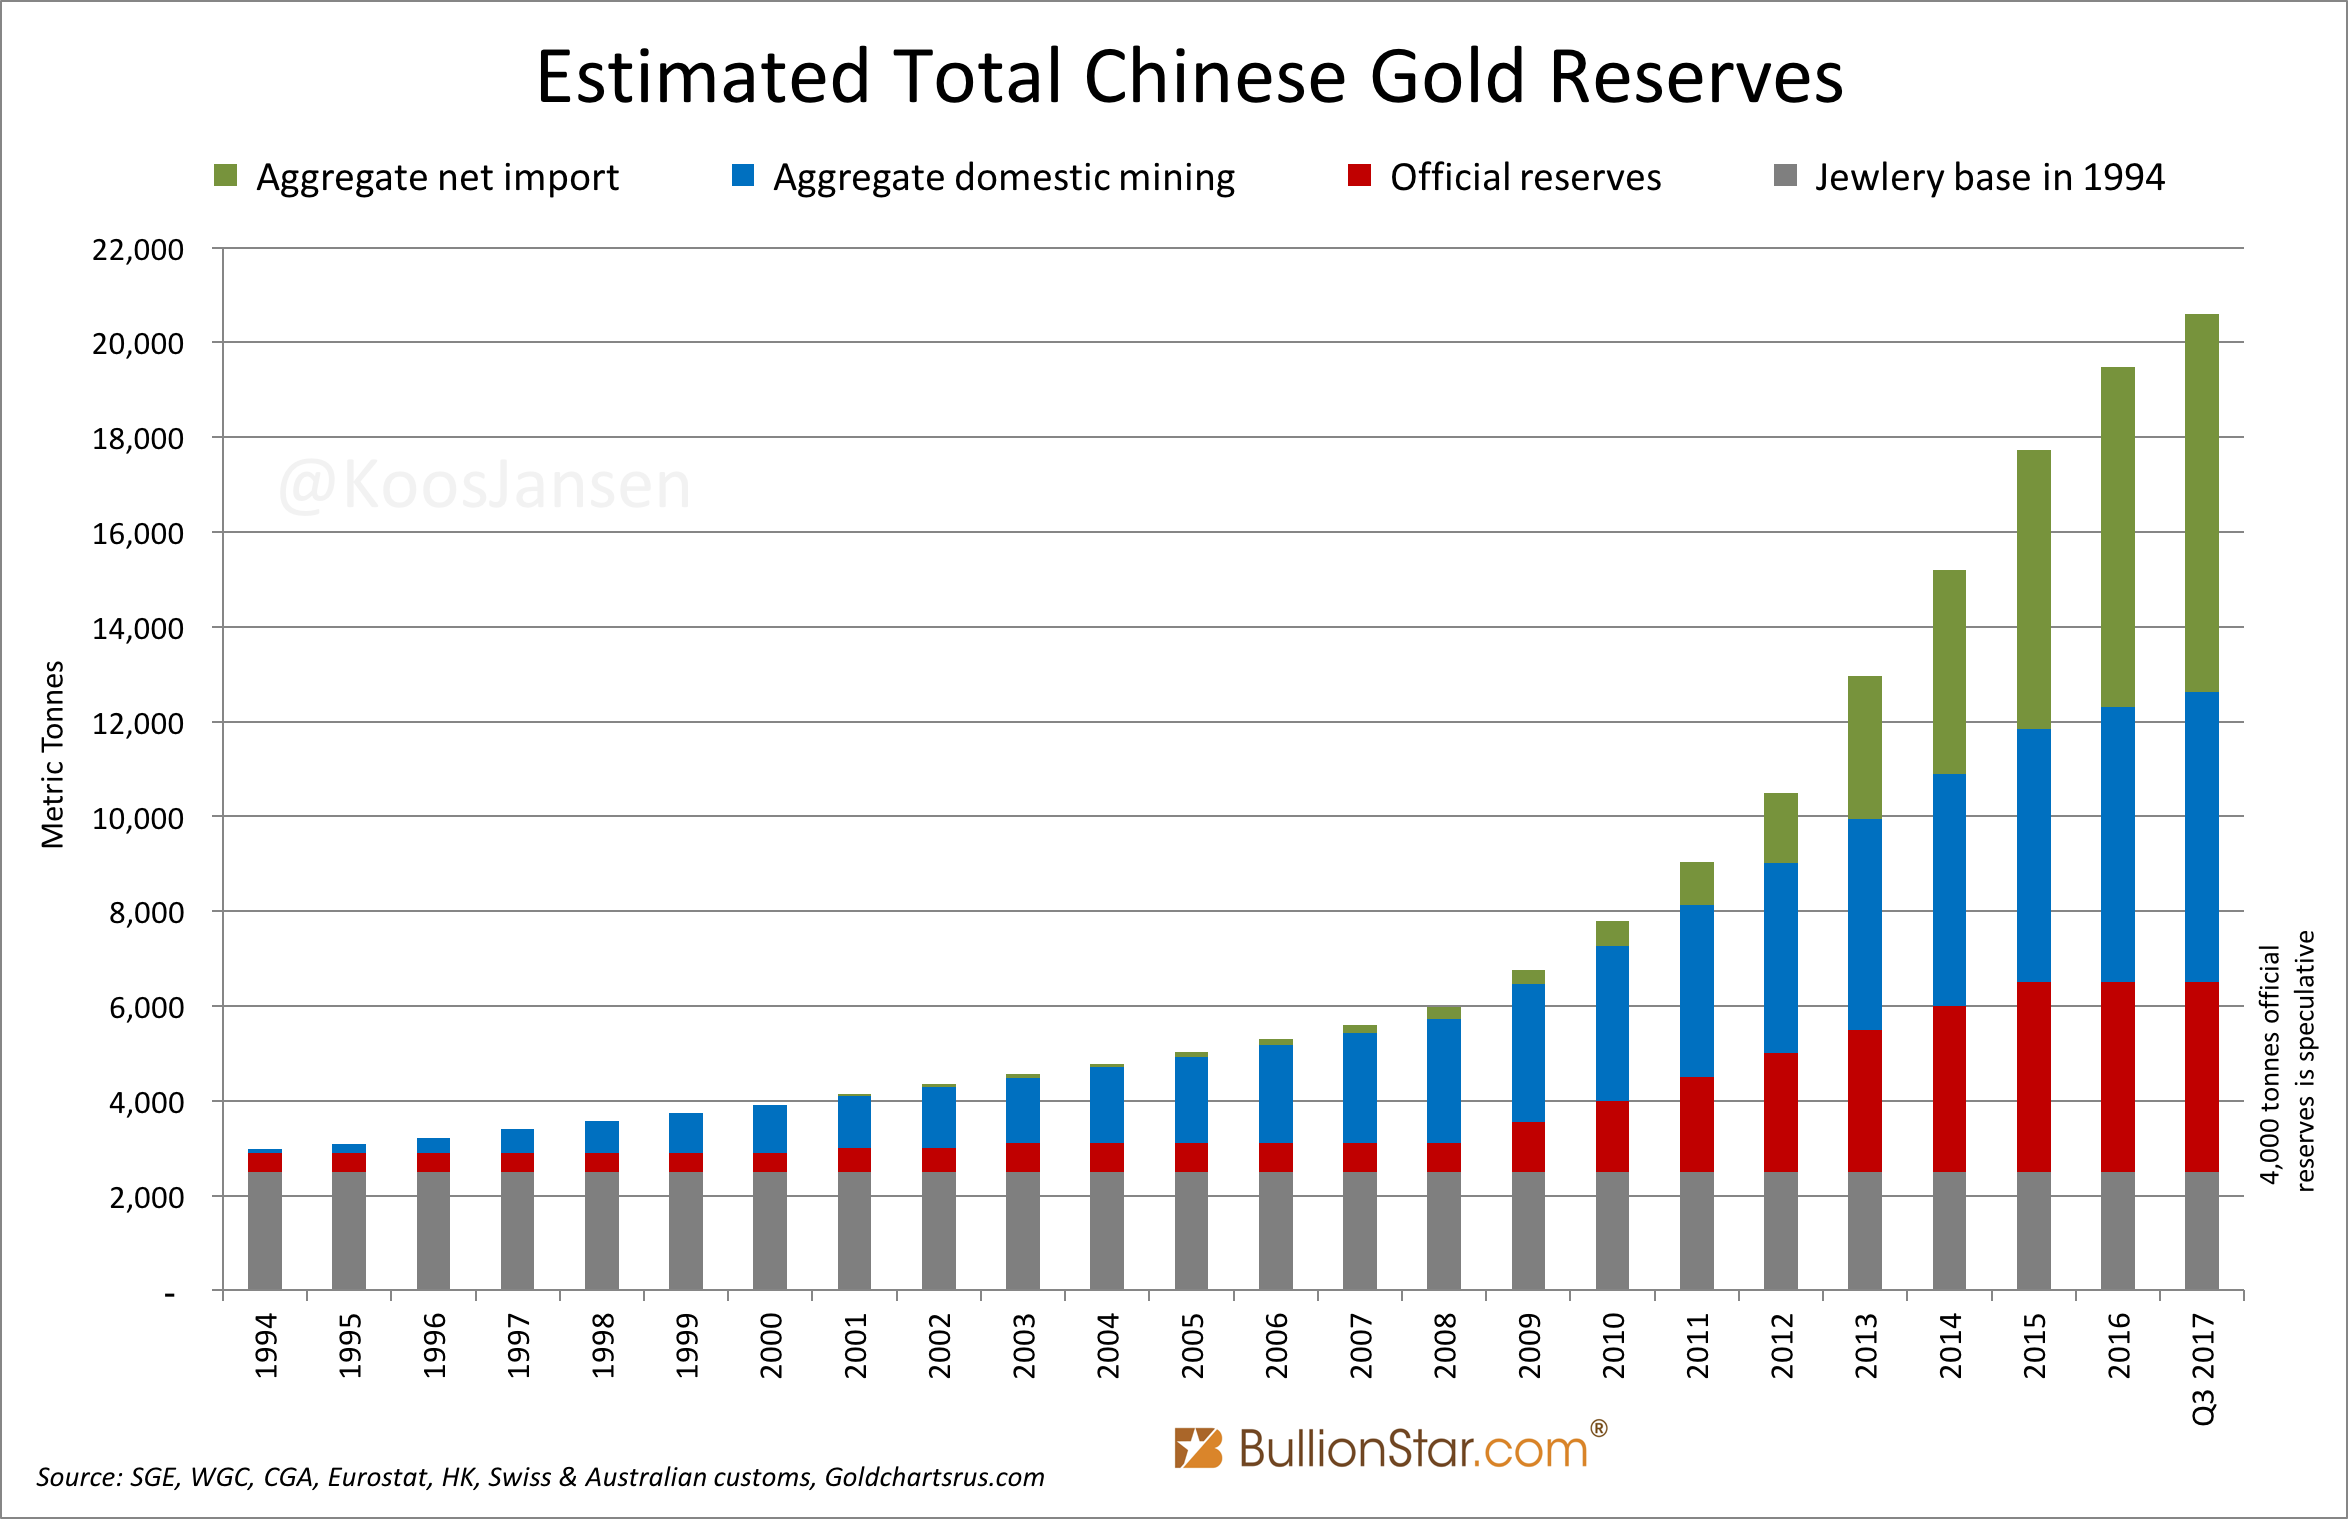 Estimated Total Chinese Gold Reserves, 1994 - Q3 2017